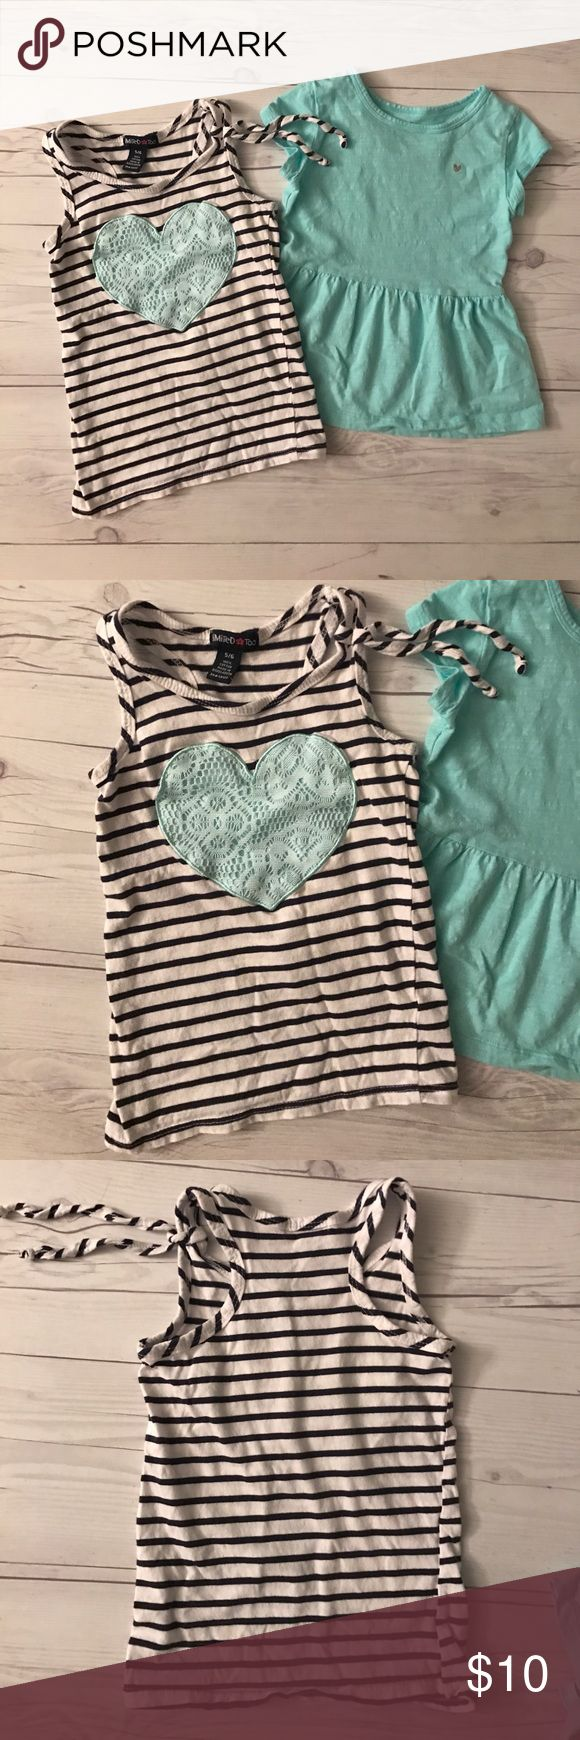 Two tops Two cotton tops. The stipe top is by Limited too and the teal top is by Carters. Both items size 5T. Excellent condition no rips or stains. I have lots of children's clothing check out my closet. ALL ITEMS ARE BUY 3 GET 1 FREE! Carter's Shirts & Tops